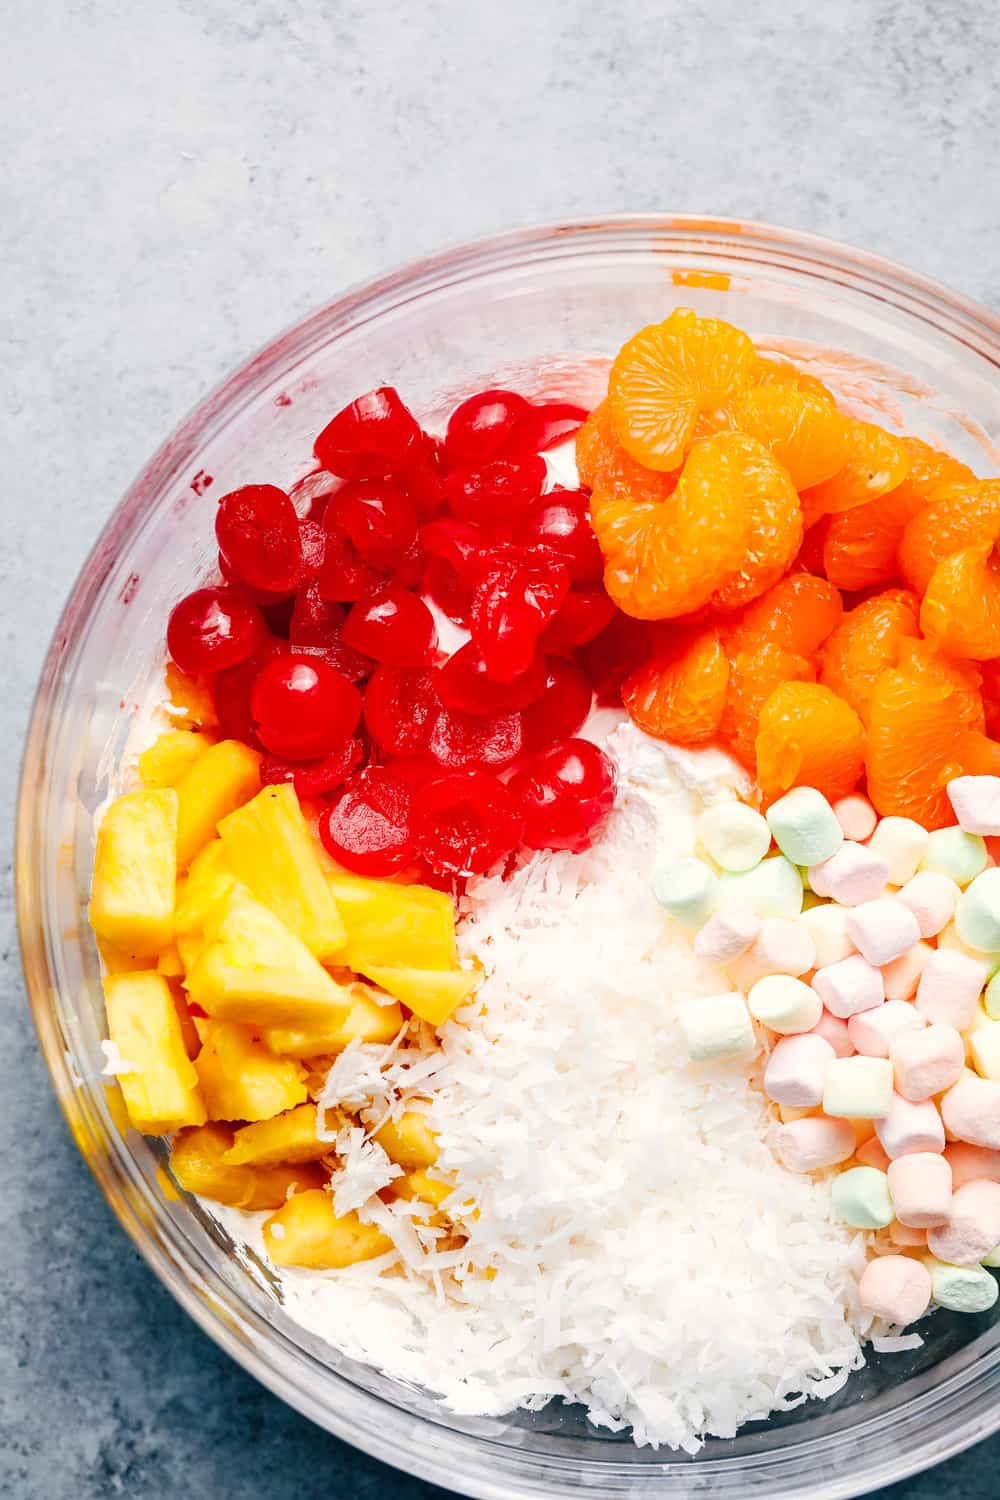 Ambrosia Salad ingredients in a glass bowl.